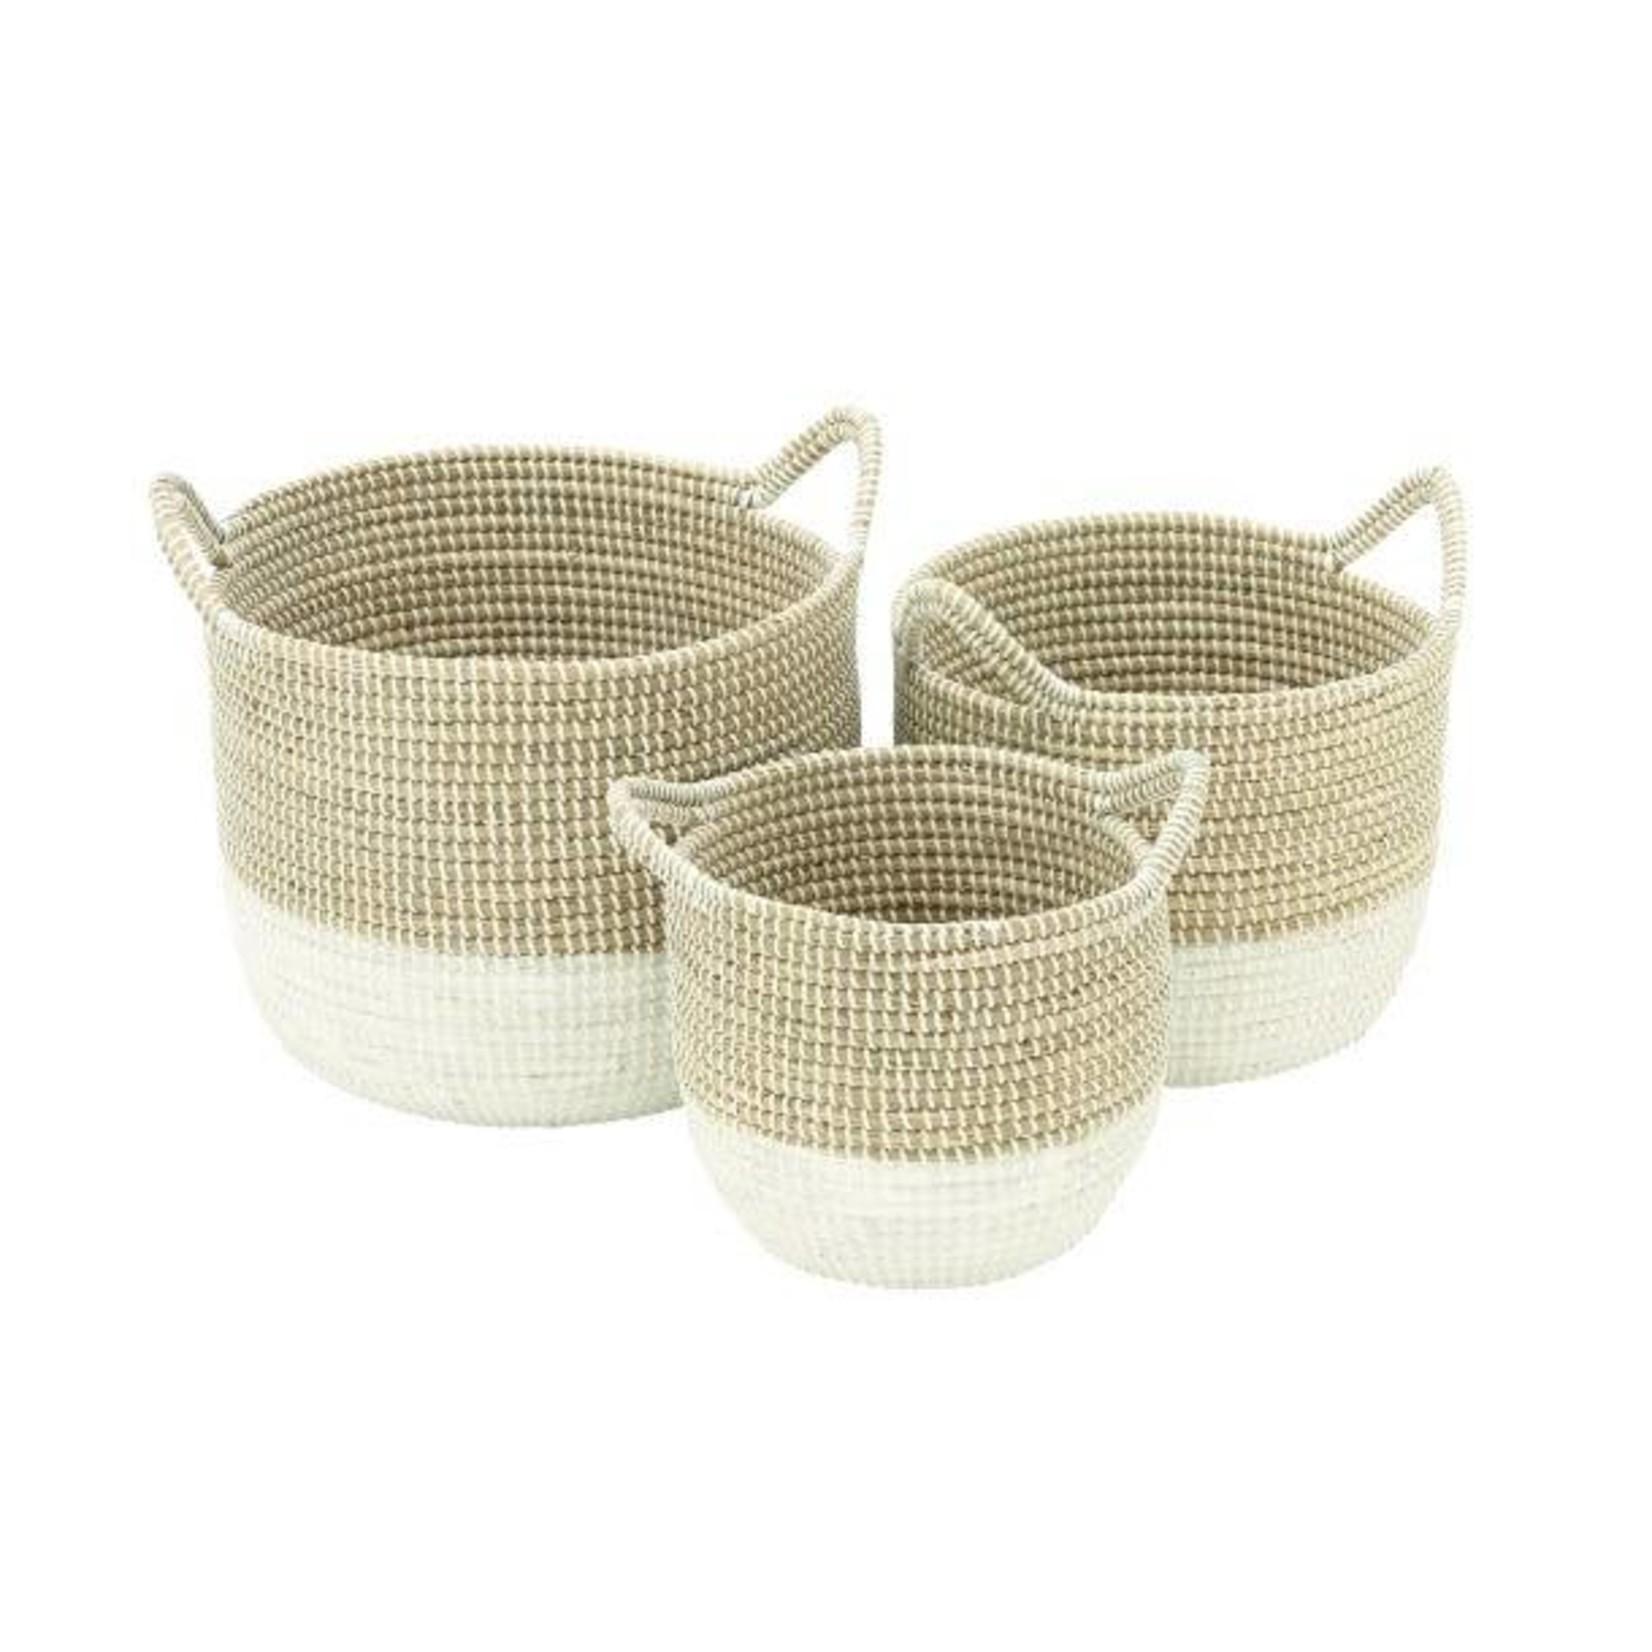 Seagrass Basket with White Bottom 41145